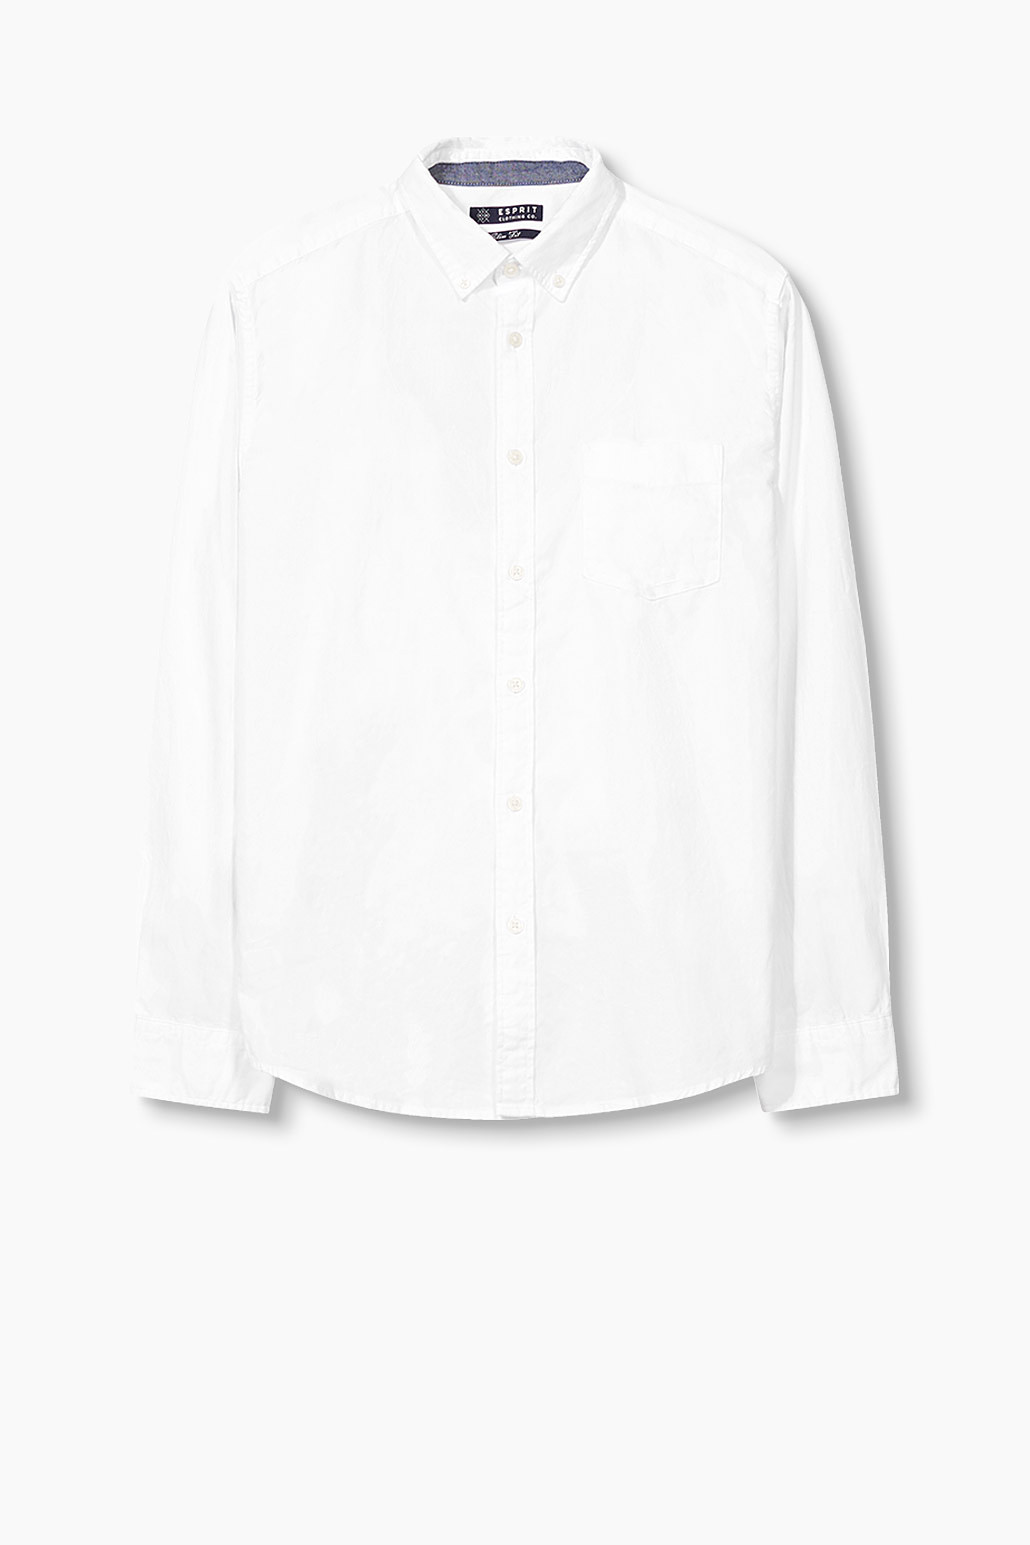 Esprit White - 100 Slim Fit Oxford Shirt